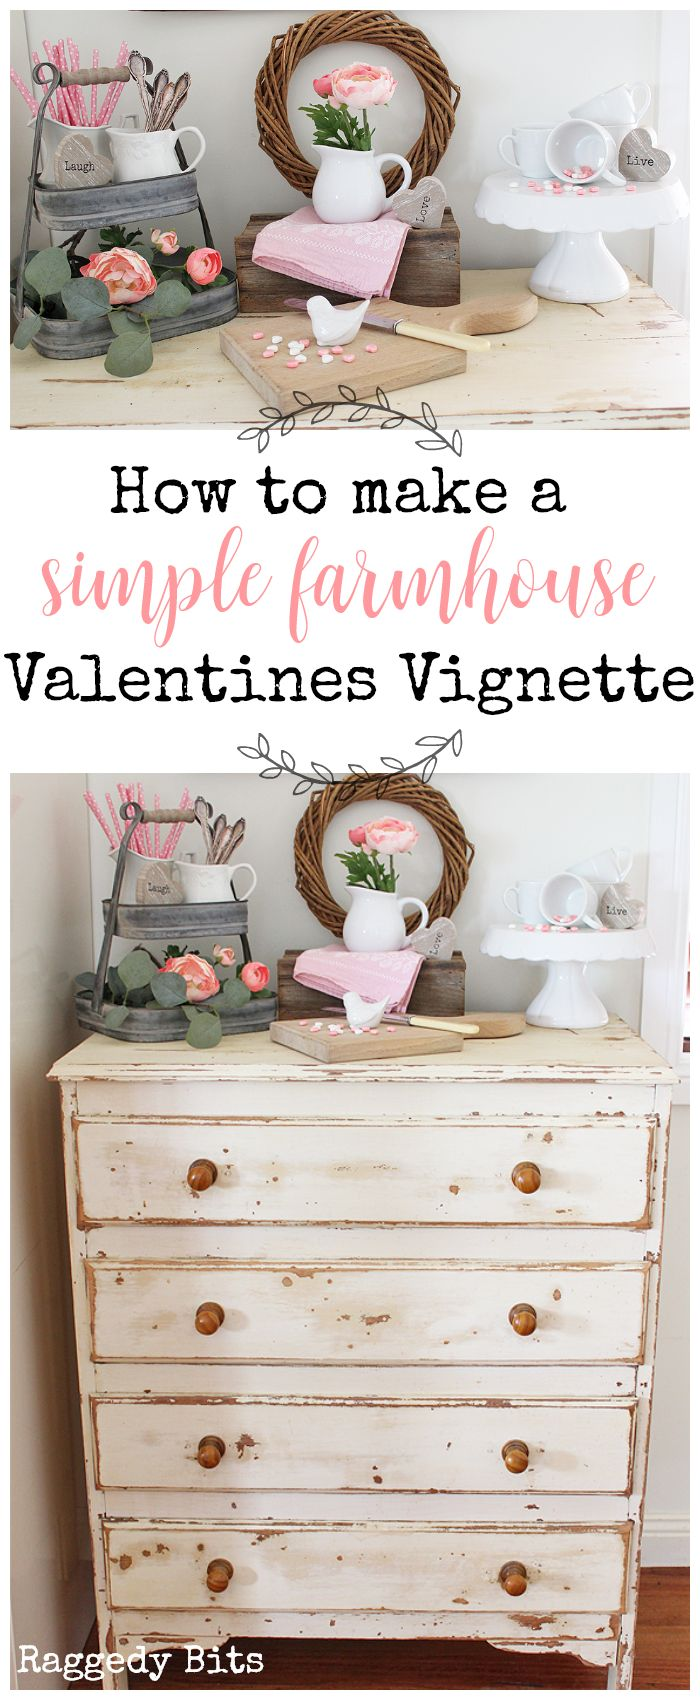 Sharing a how to make a Simple Farmhouse Valentines Vignette using things from around your home that you already have   www.raggedy-bits.com   #raggedybits #valentines #vignette #farmhouse #simple